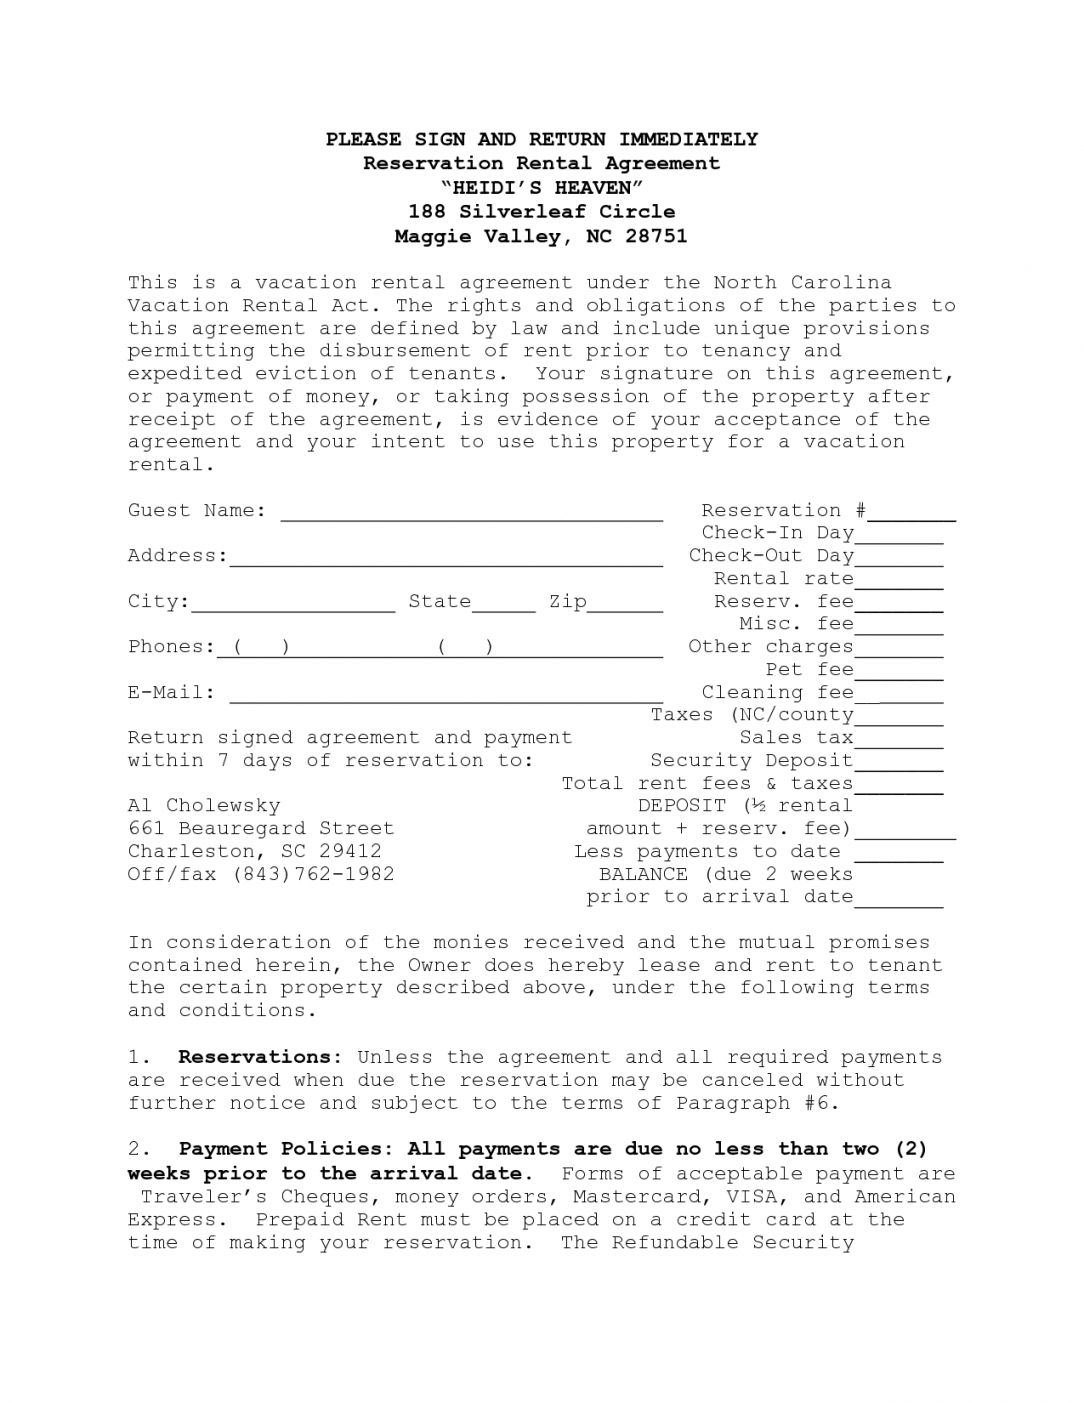 this is the house lease agreement template  house rental agreement contract in home rental agreement contract